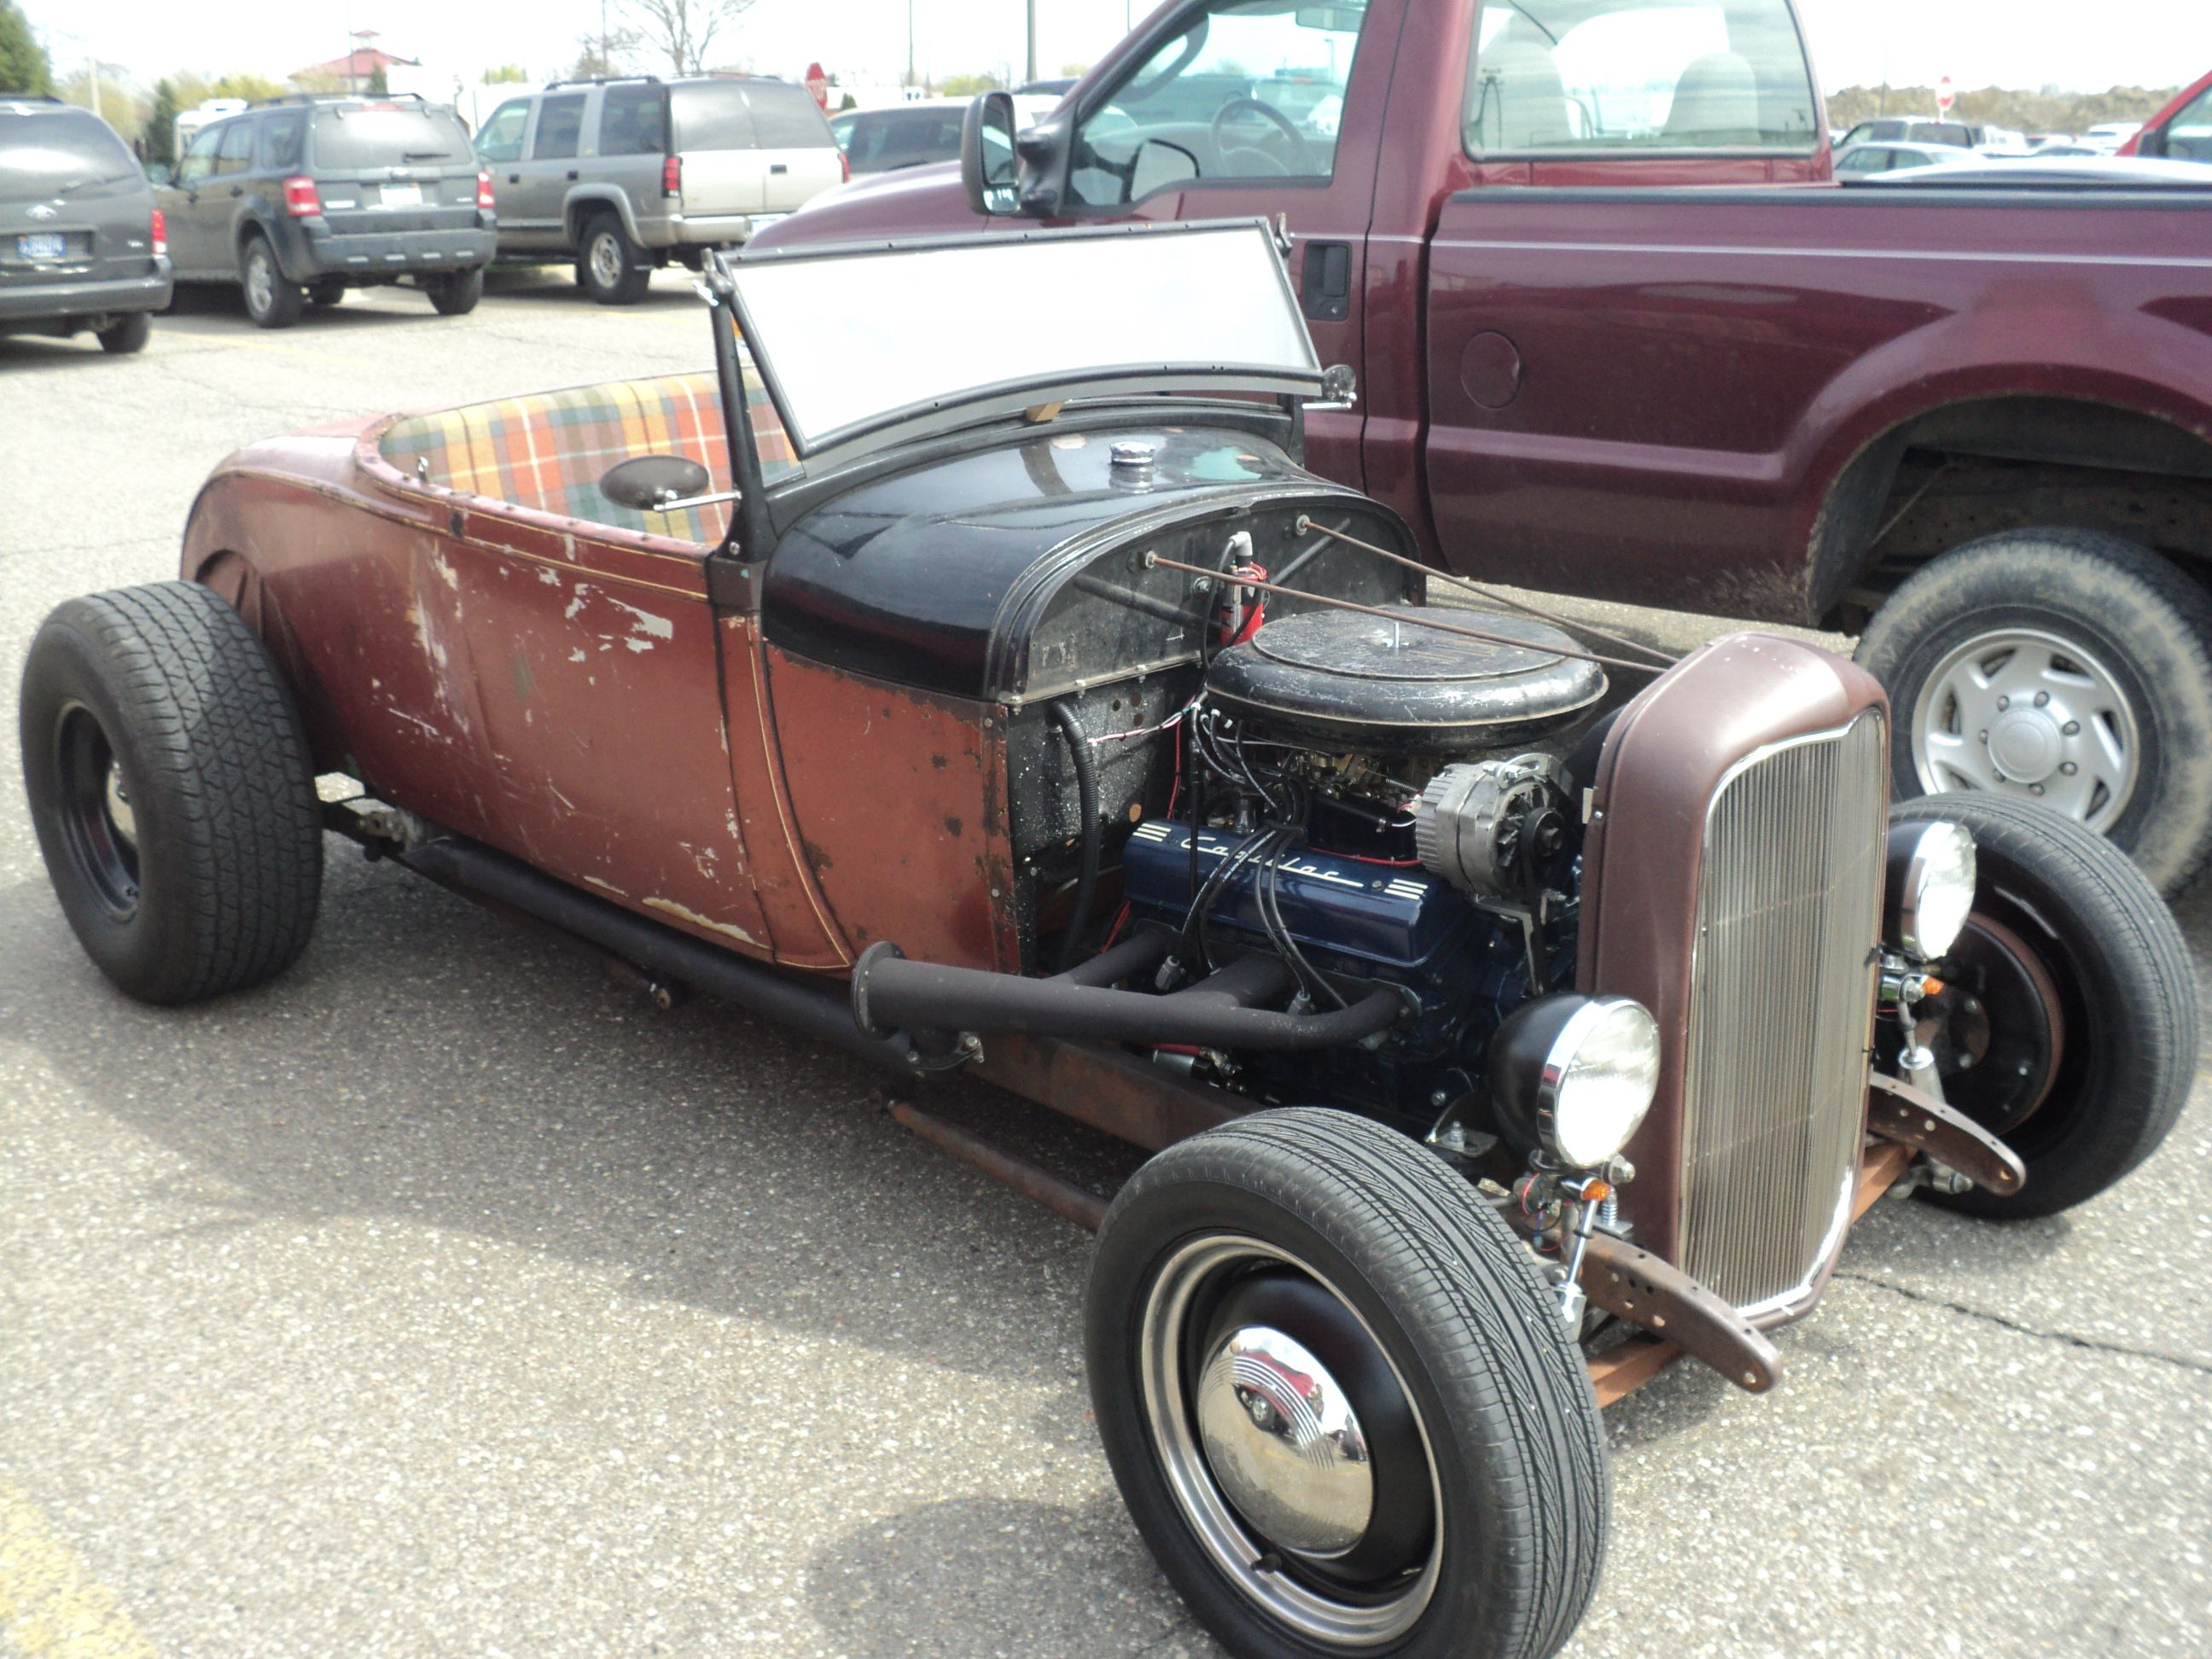 HOT RODS 1950 - Google Search | MICHAEL A YOUNG HOT RODS | Pinterest ...